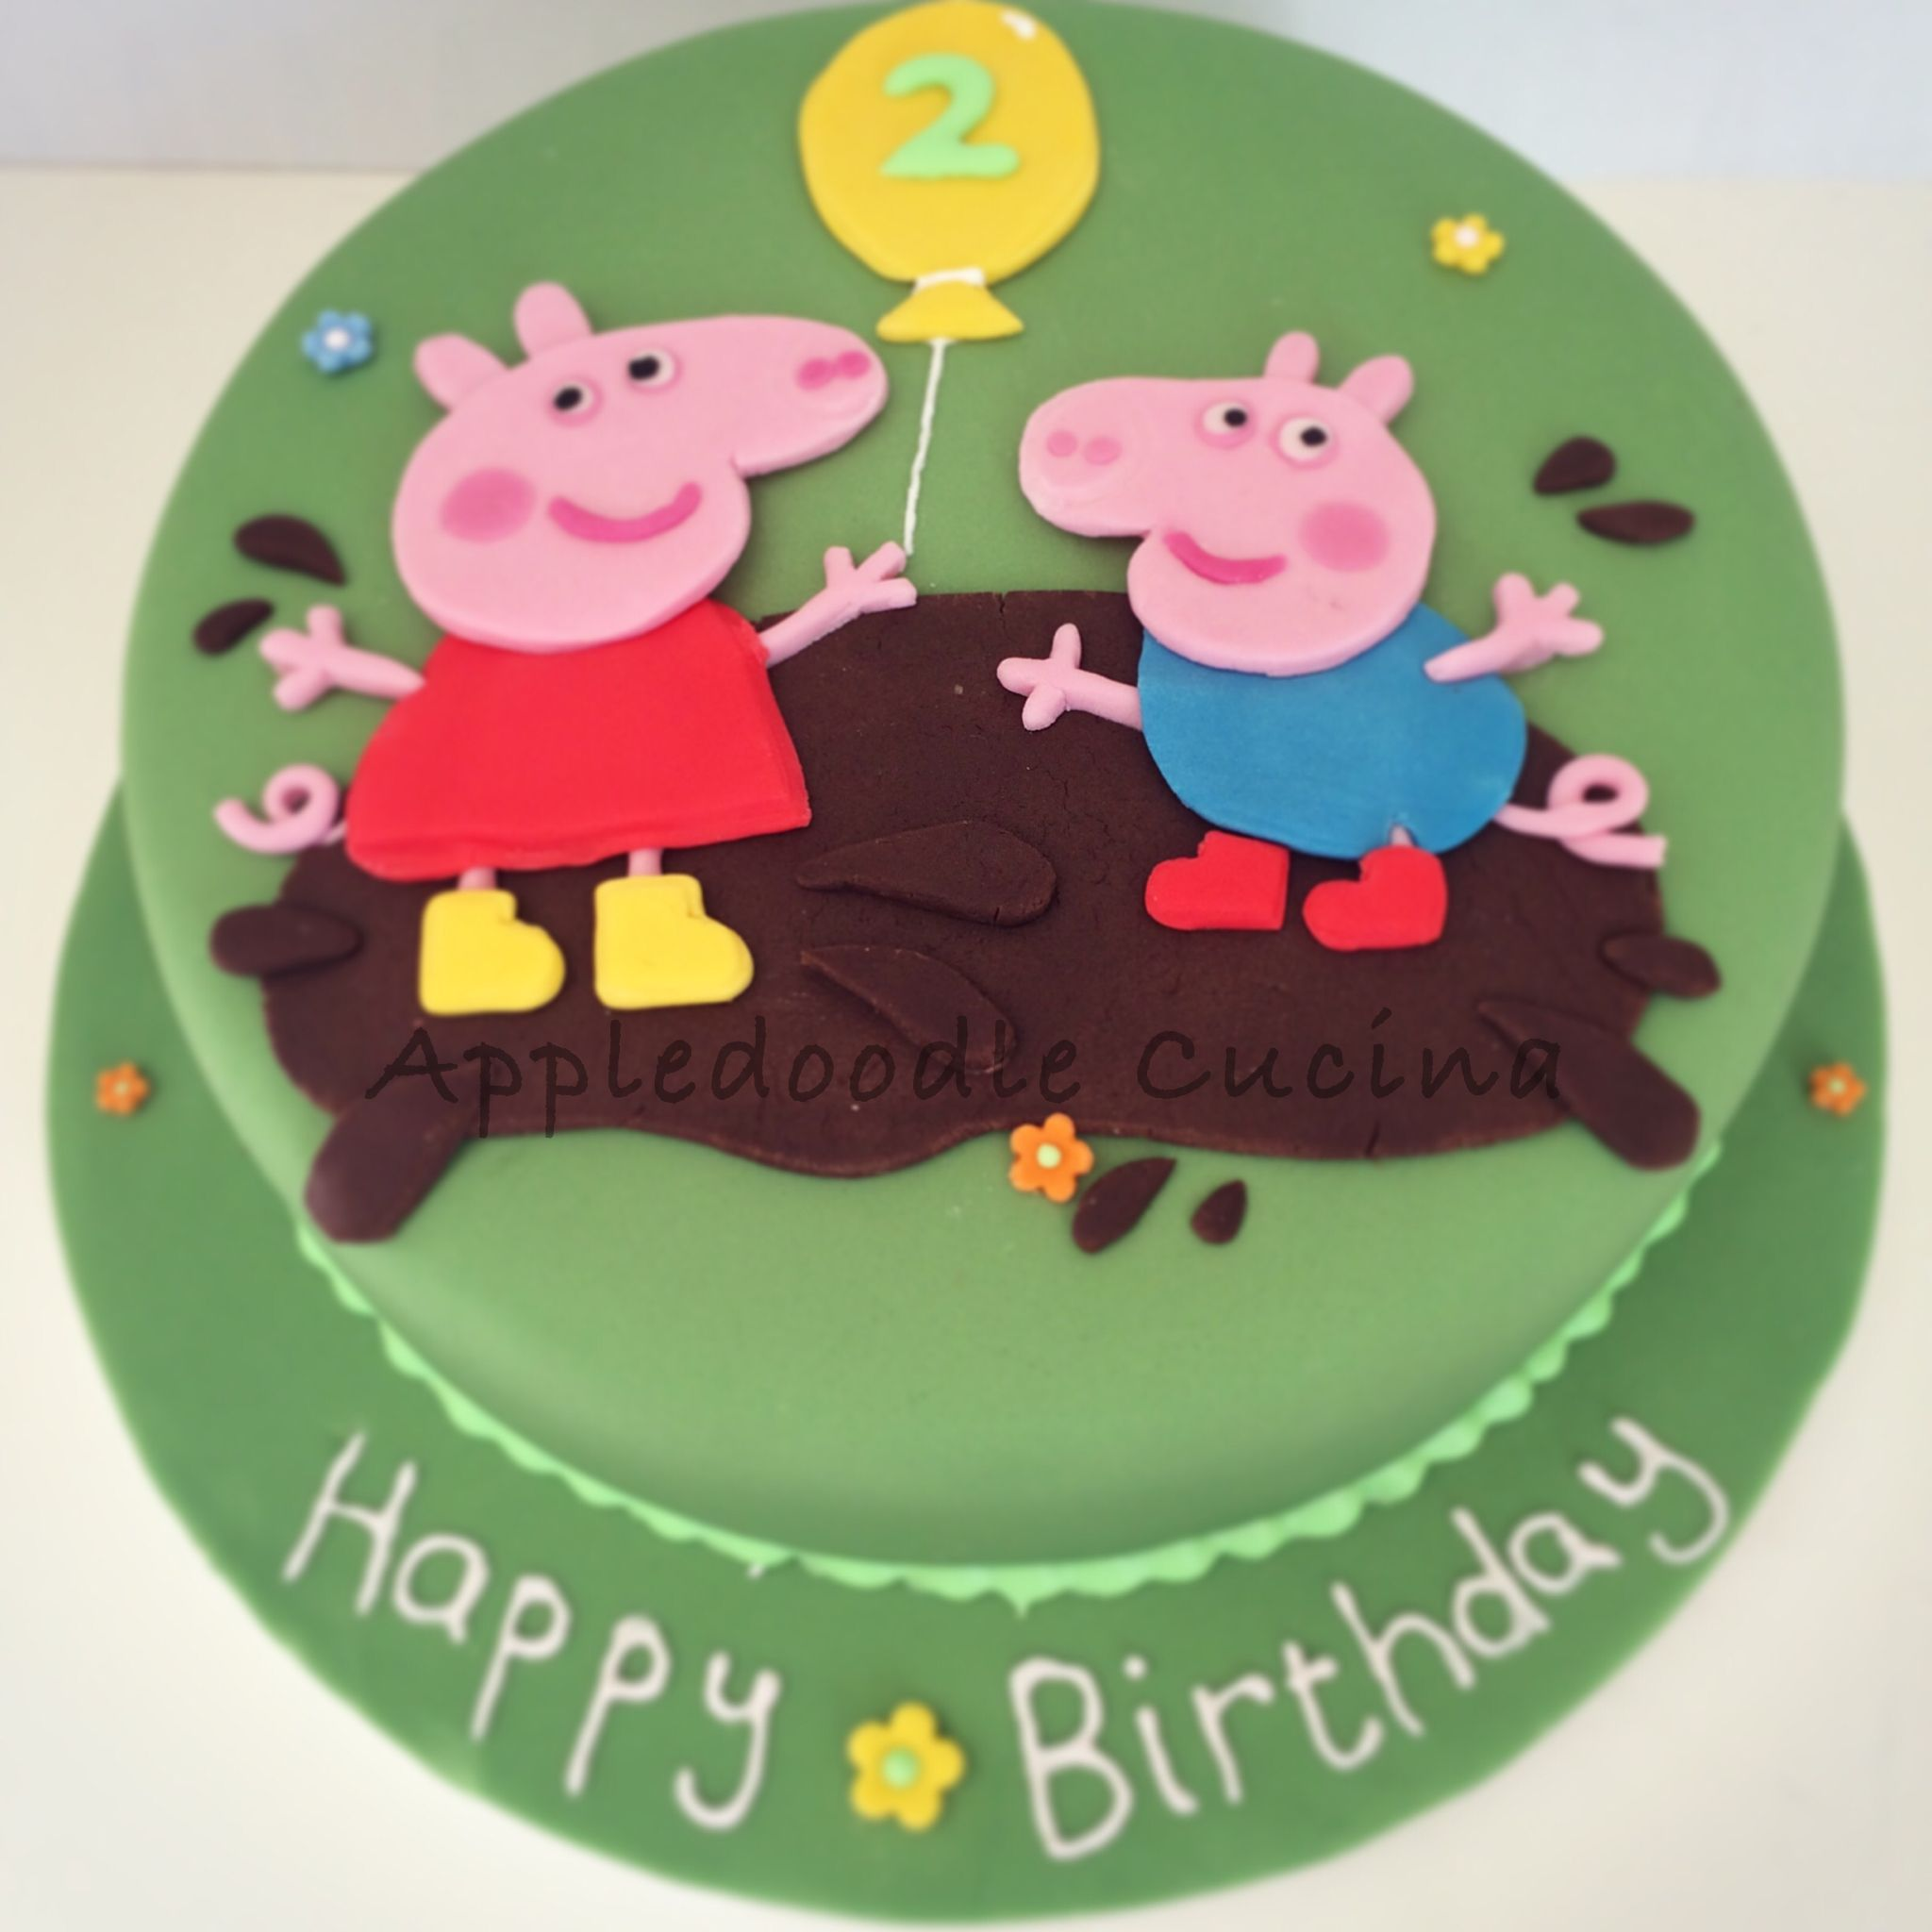 Peppa Pig Cake For 2nd Birthday Girl Yup Everyone Loves Jumping In Muddy Puddles Chocolate Muddy Puddles Peppa Pig Cake Pig Cake Cake